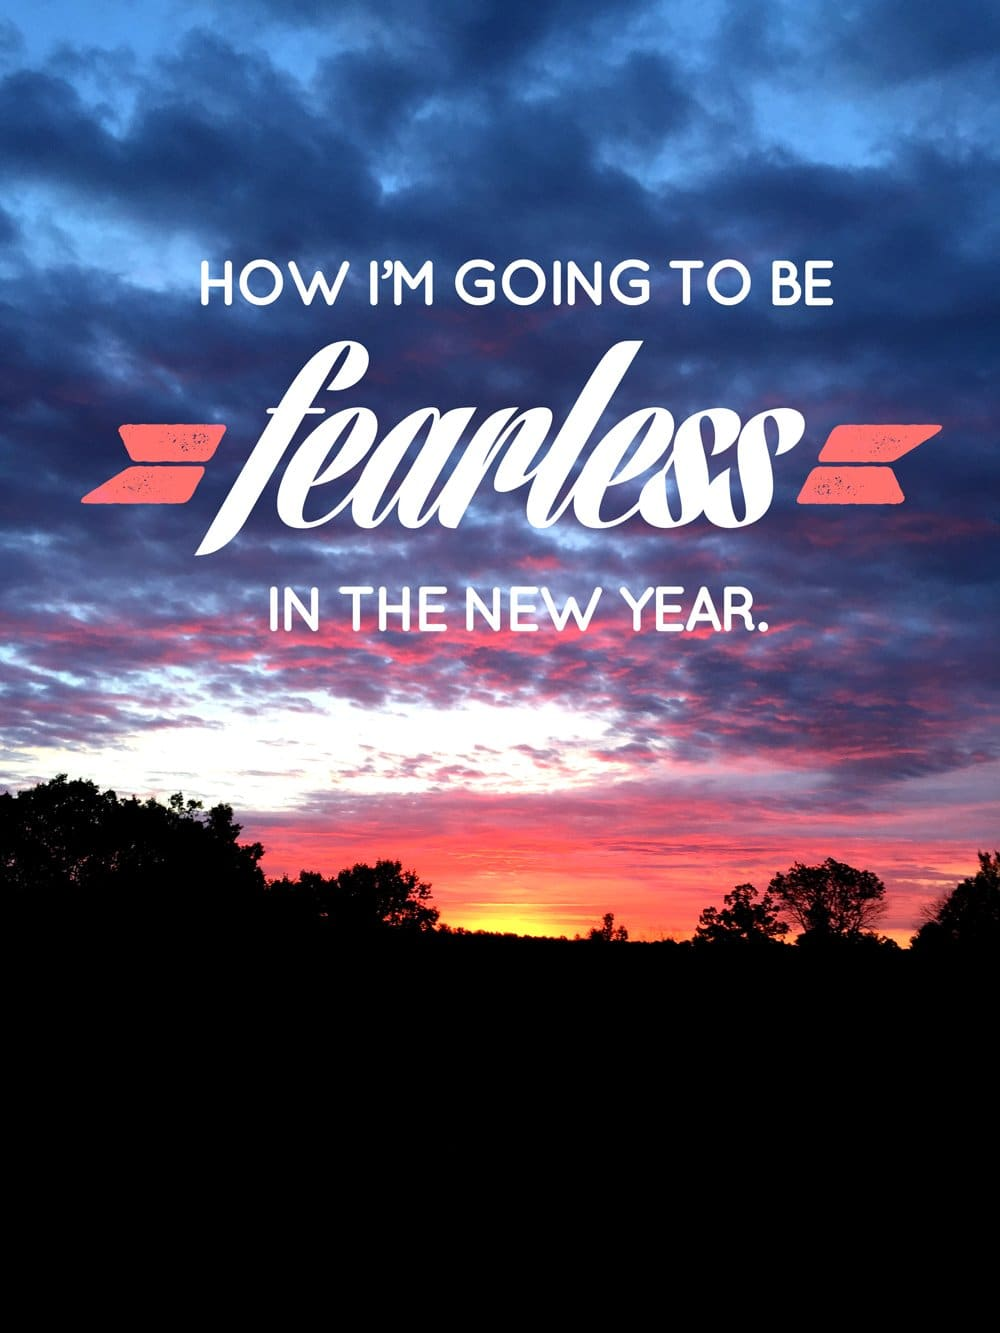 How I'm Going to Be Fearless in the New Year